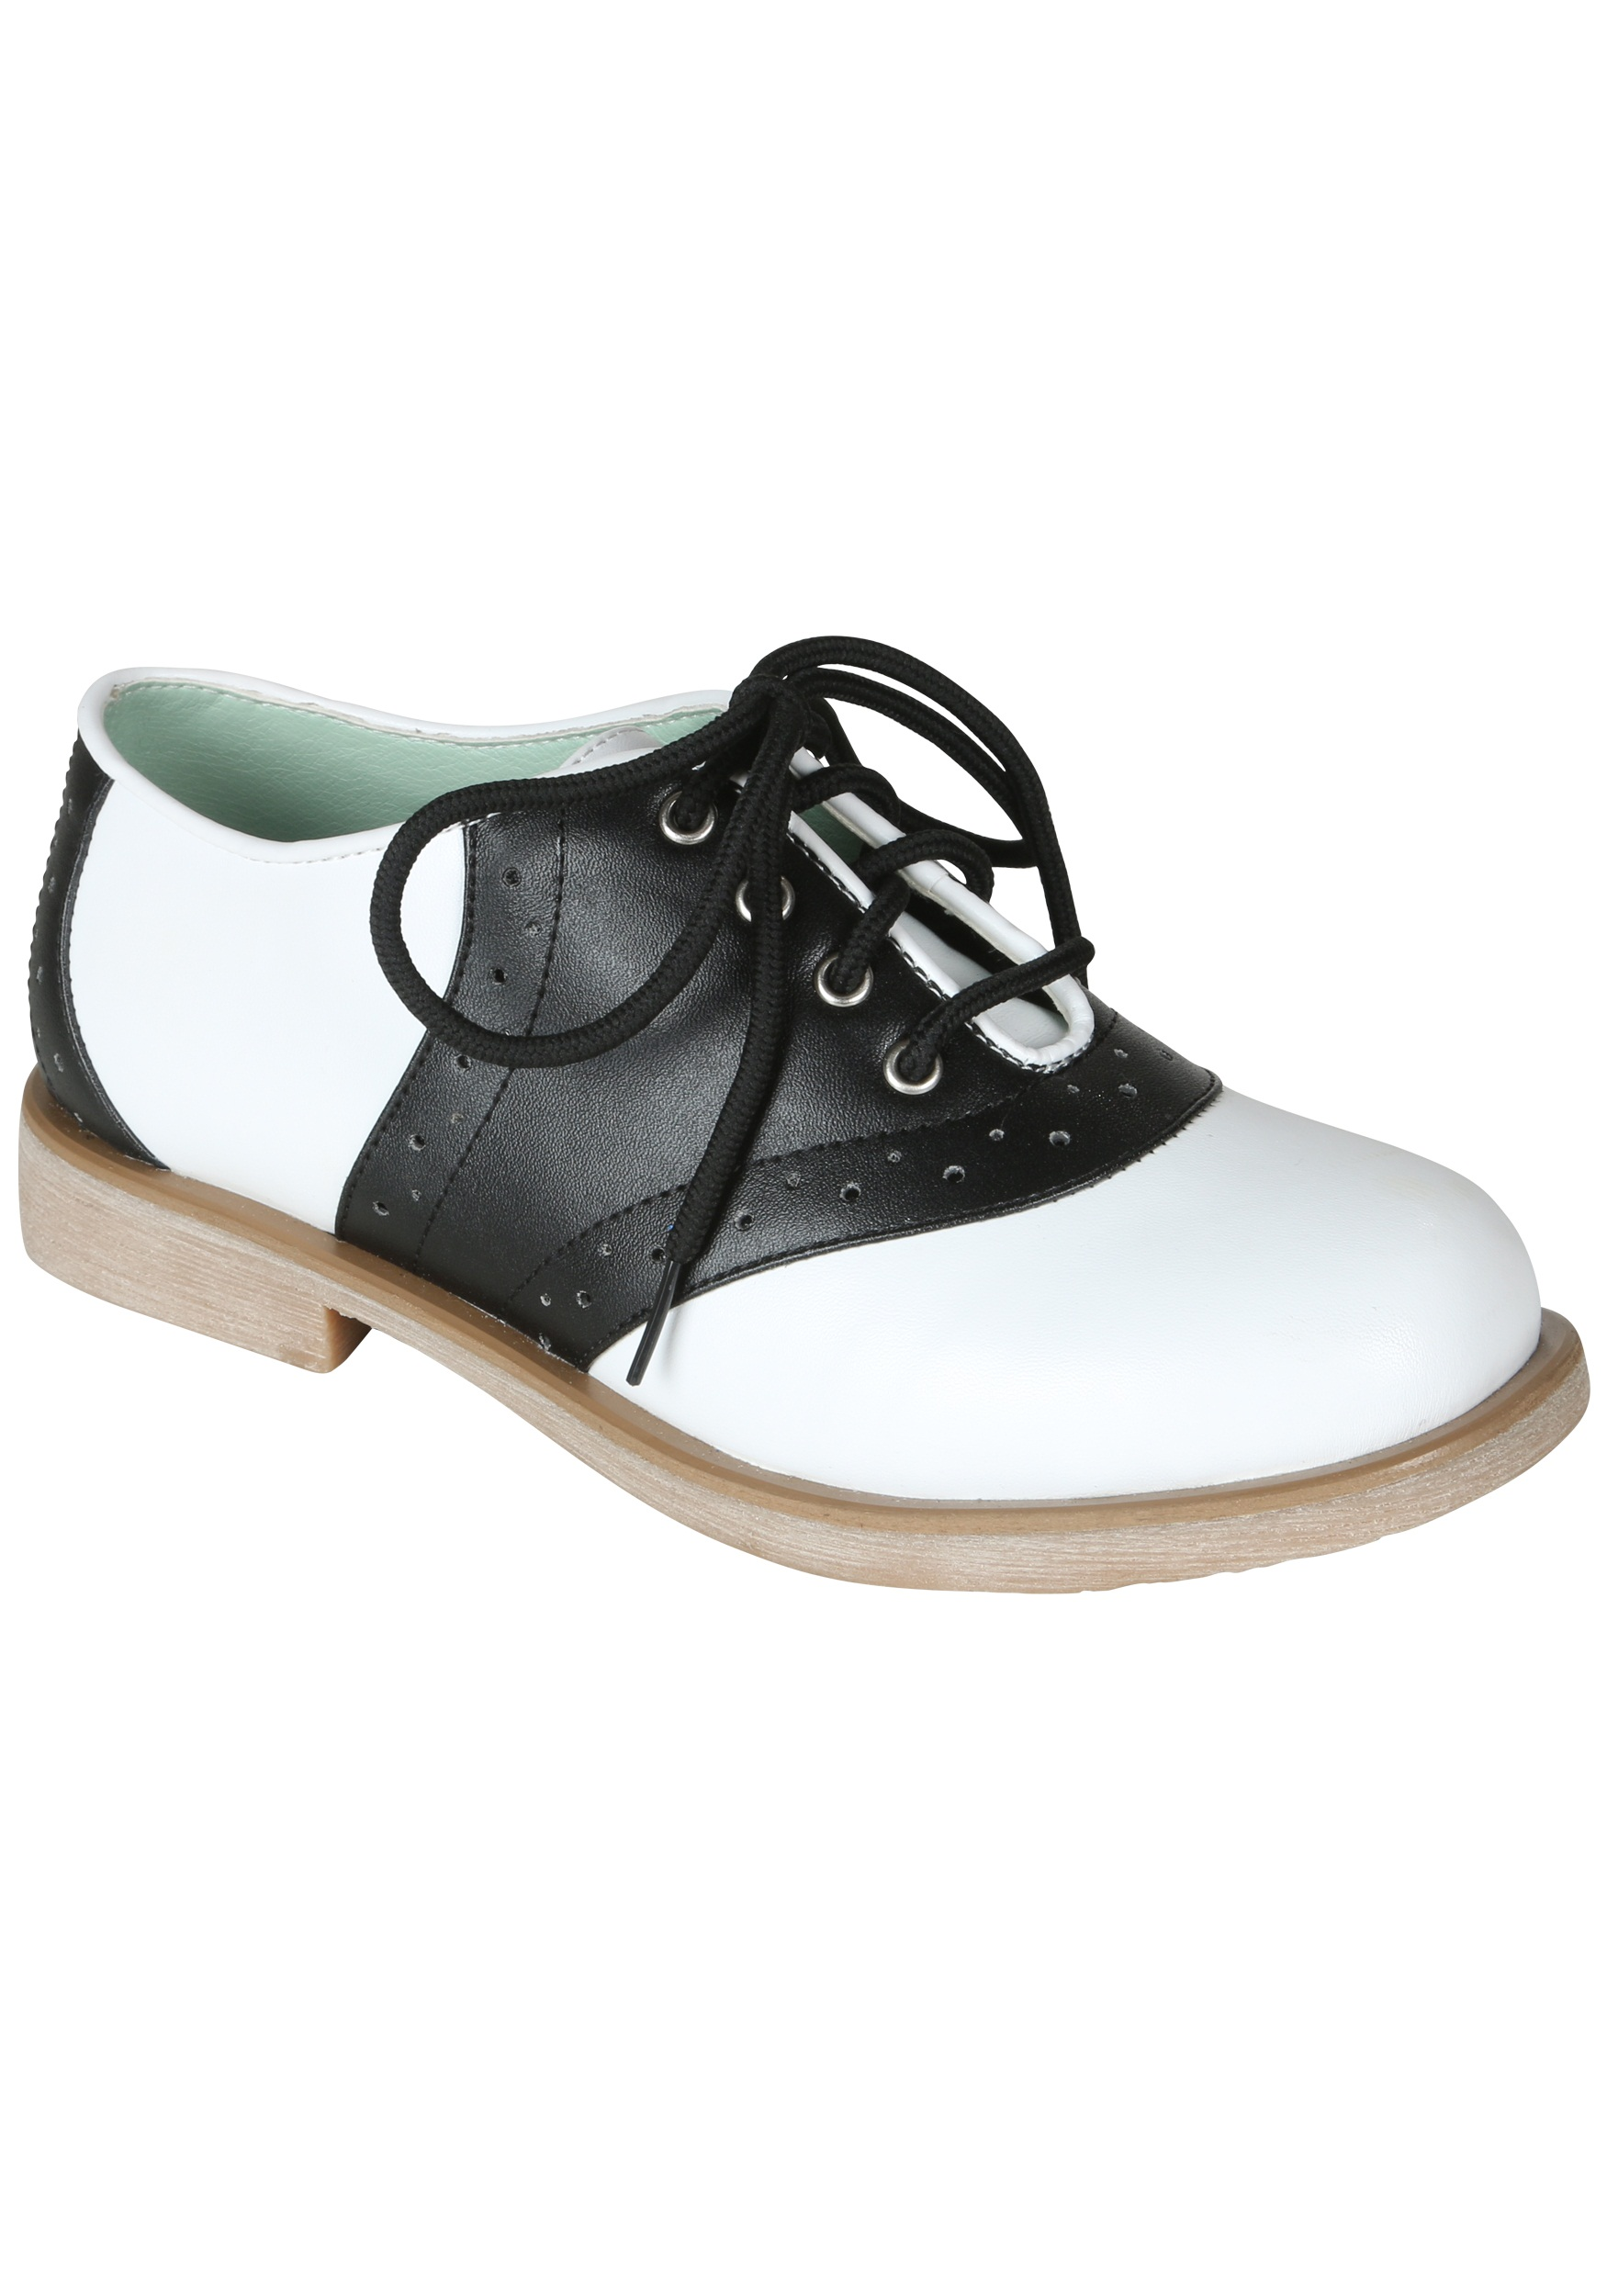 Womens Adult Saddle Shoes 50s Halloween Costume Accessories